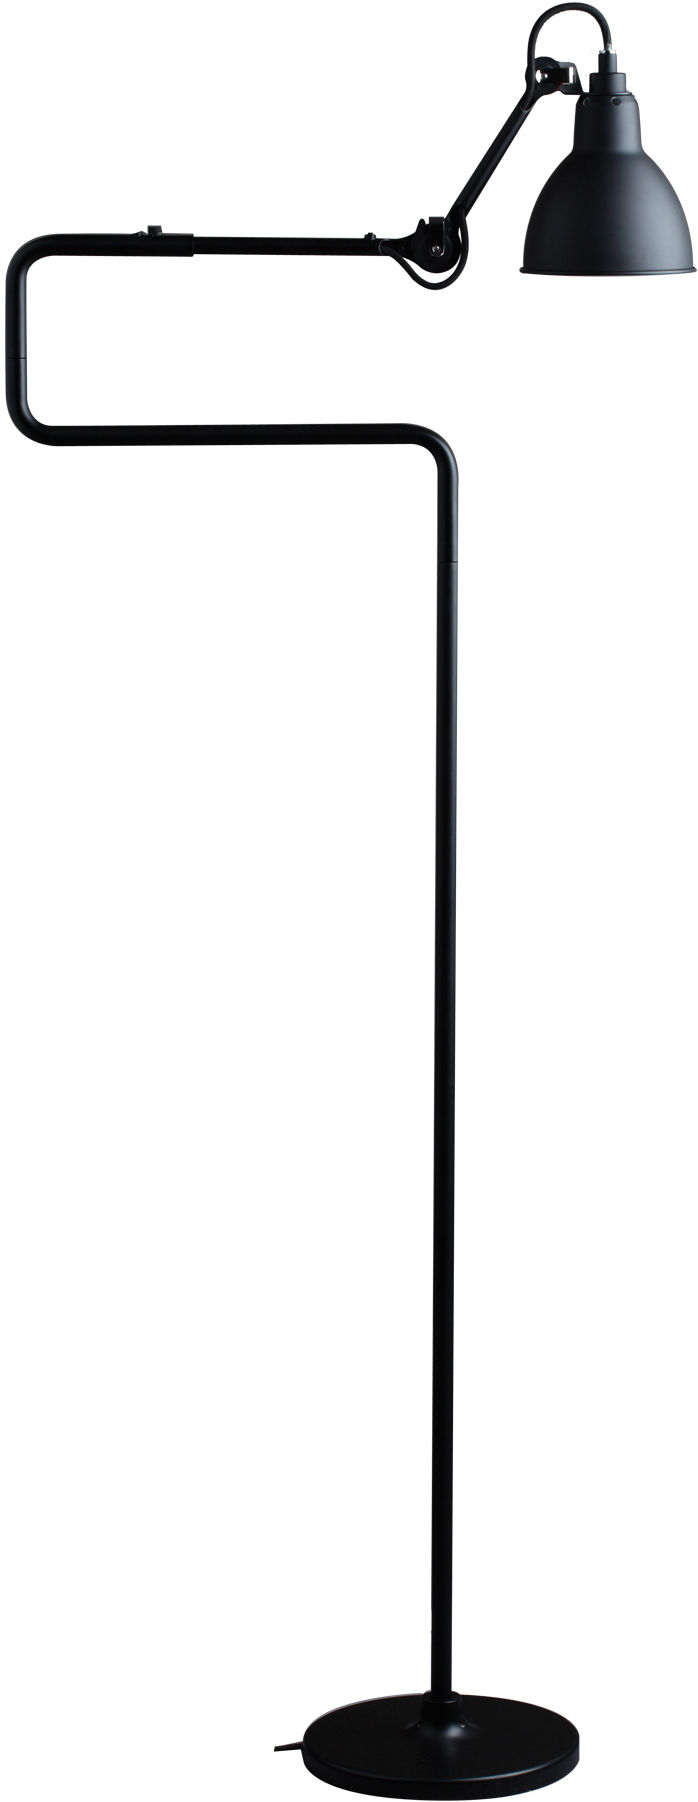 Lighting - Floor lamps - N°411 Small reading lamp - H 138 cm by DCW éditions - Lampes Gras - Black diffuser / Black structure - Steel